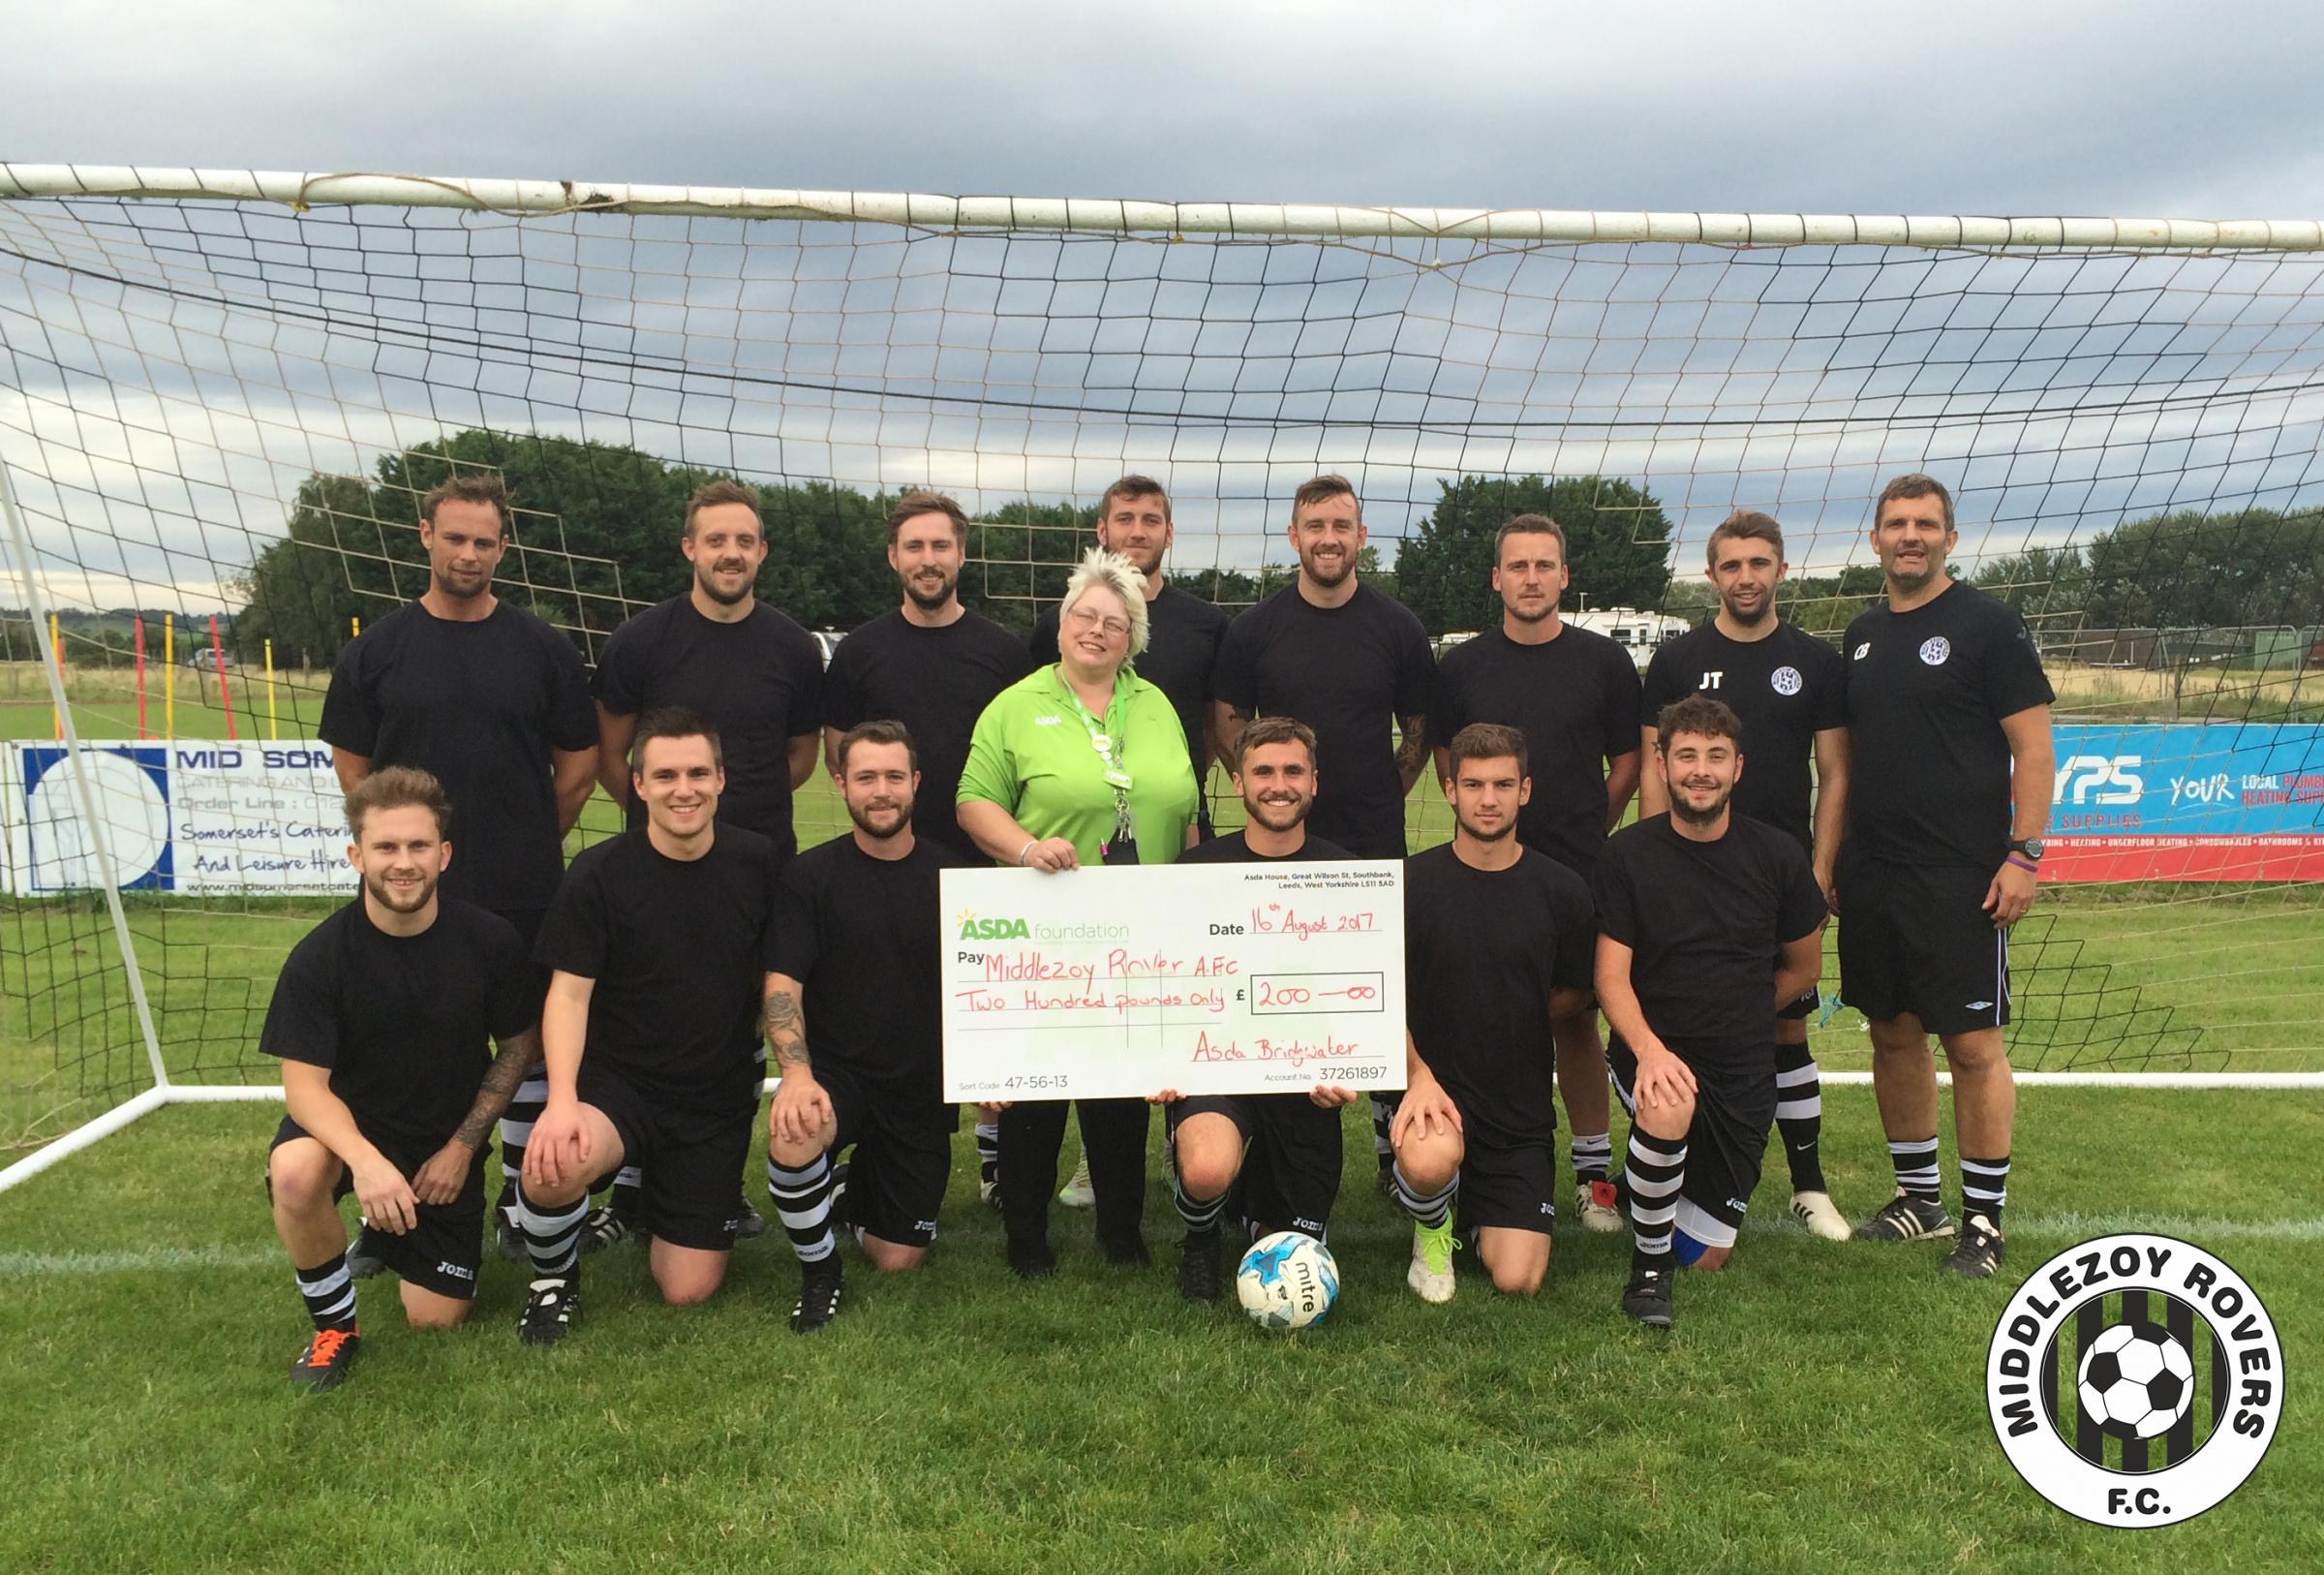 BOOST: Middlezoy Rovers FC receive a £200 cheque from Asda community champion Joanne Thexton, ahead of their match against Staplegrove.